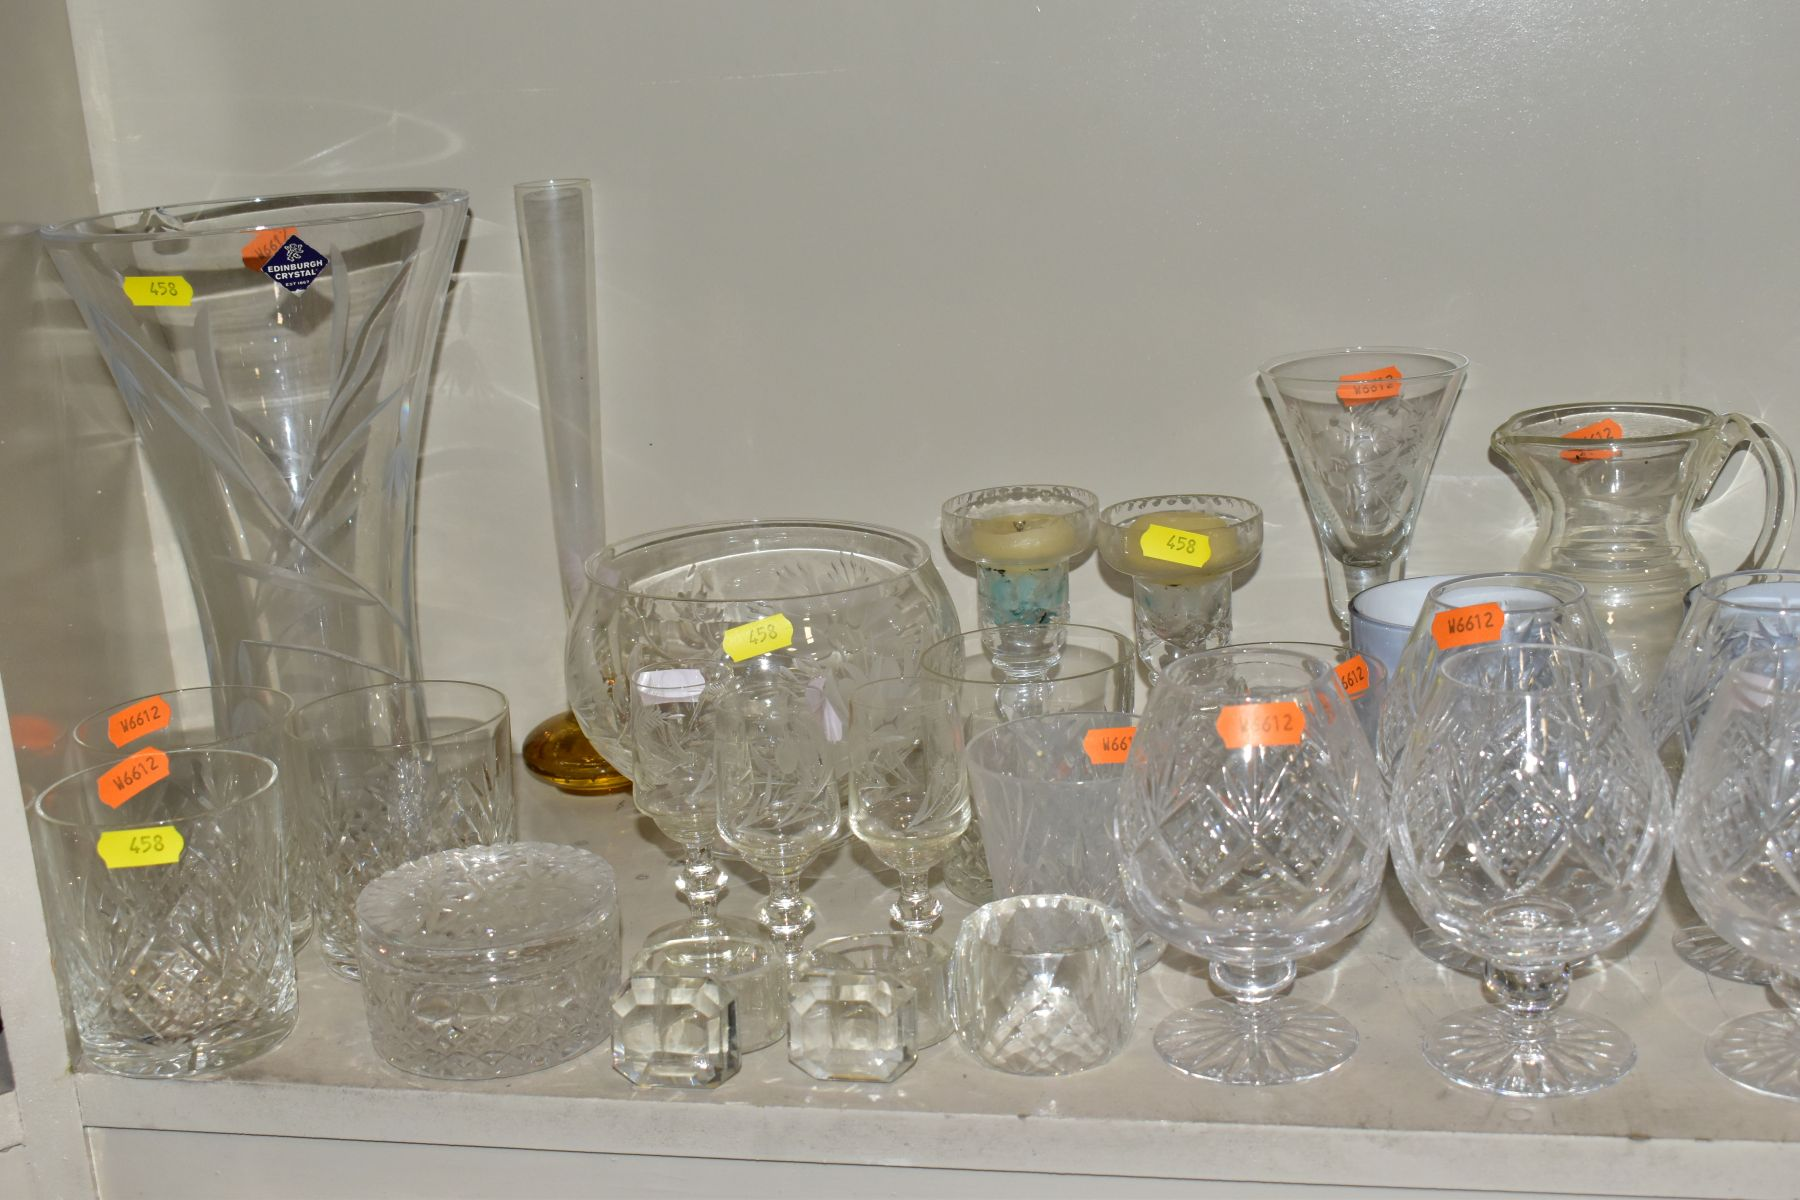 A SMALL QUANTITY OF CLEAR AND COLOURED GLASSWARE, including an Edinburgh Crystal vase, height 25. - Image 3 of 10